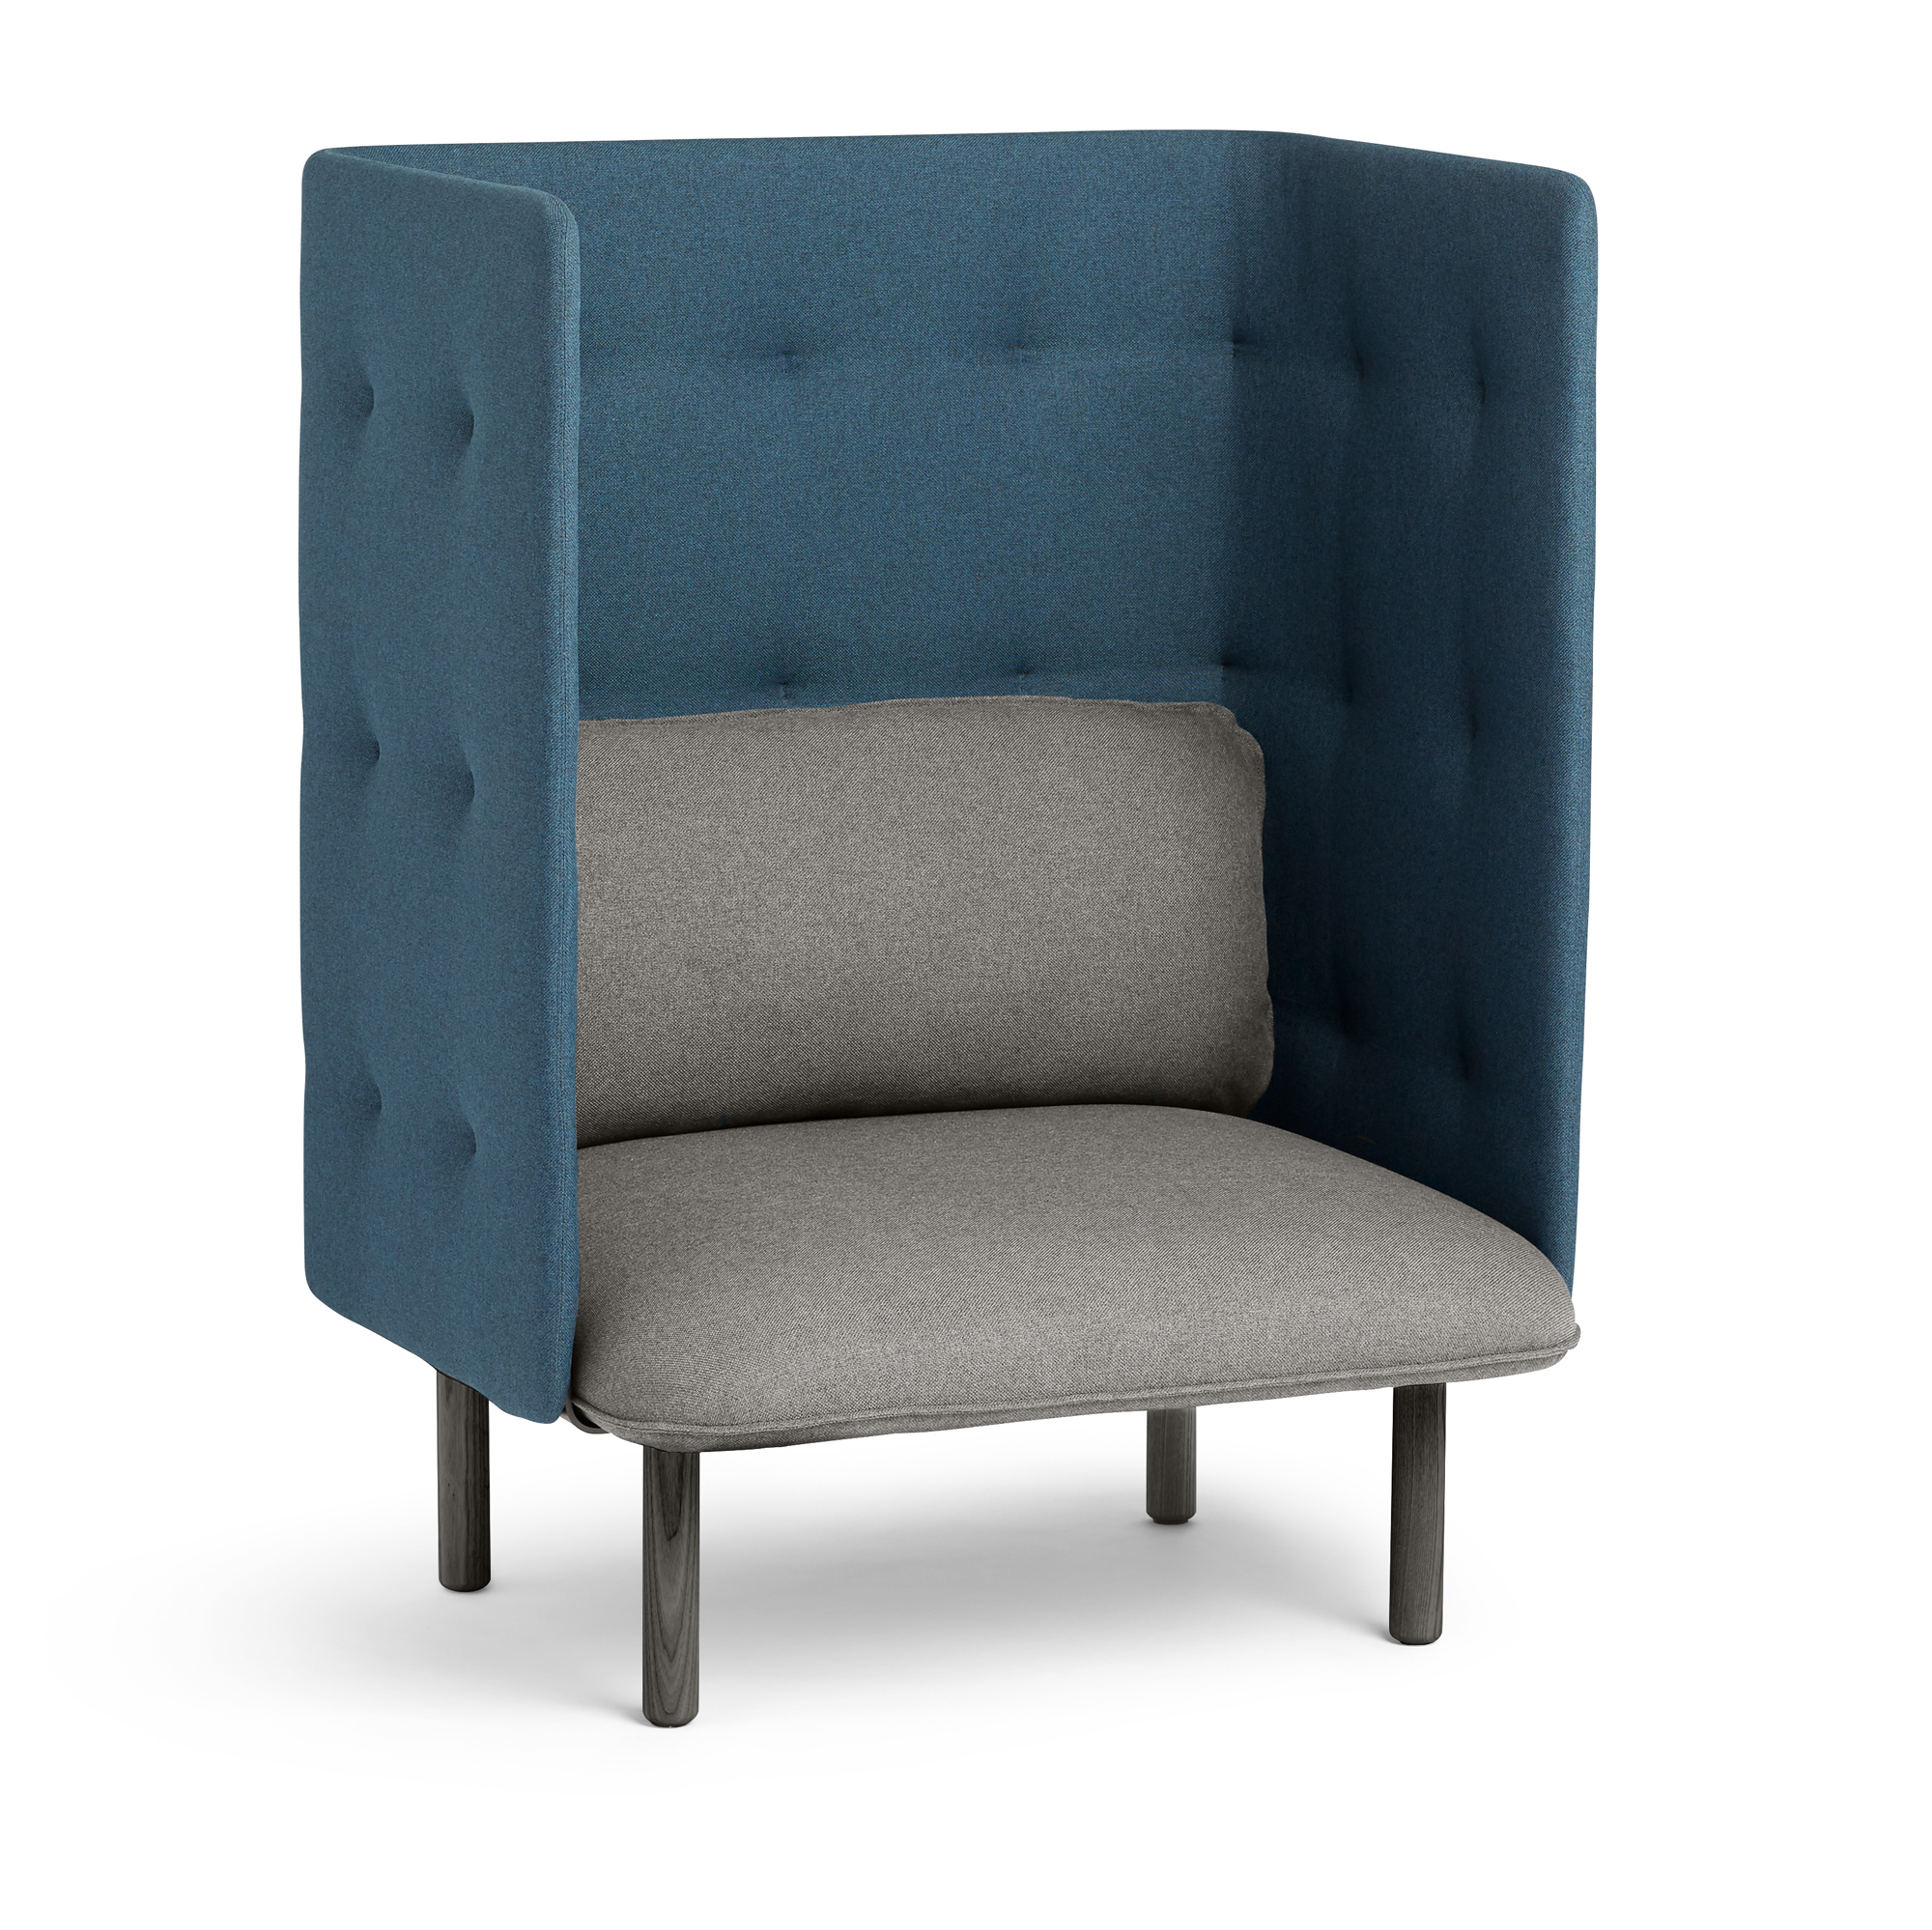 Gray + Dark Blue QT Lounge Chair,Gray,hi Res. Loading Zoom